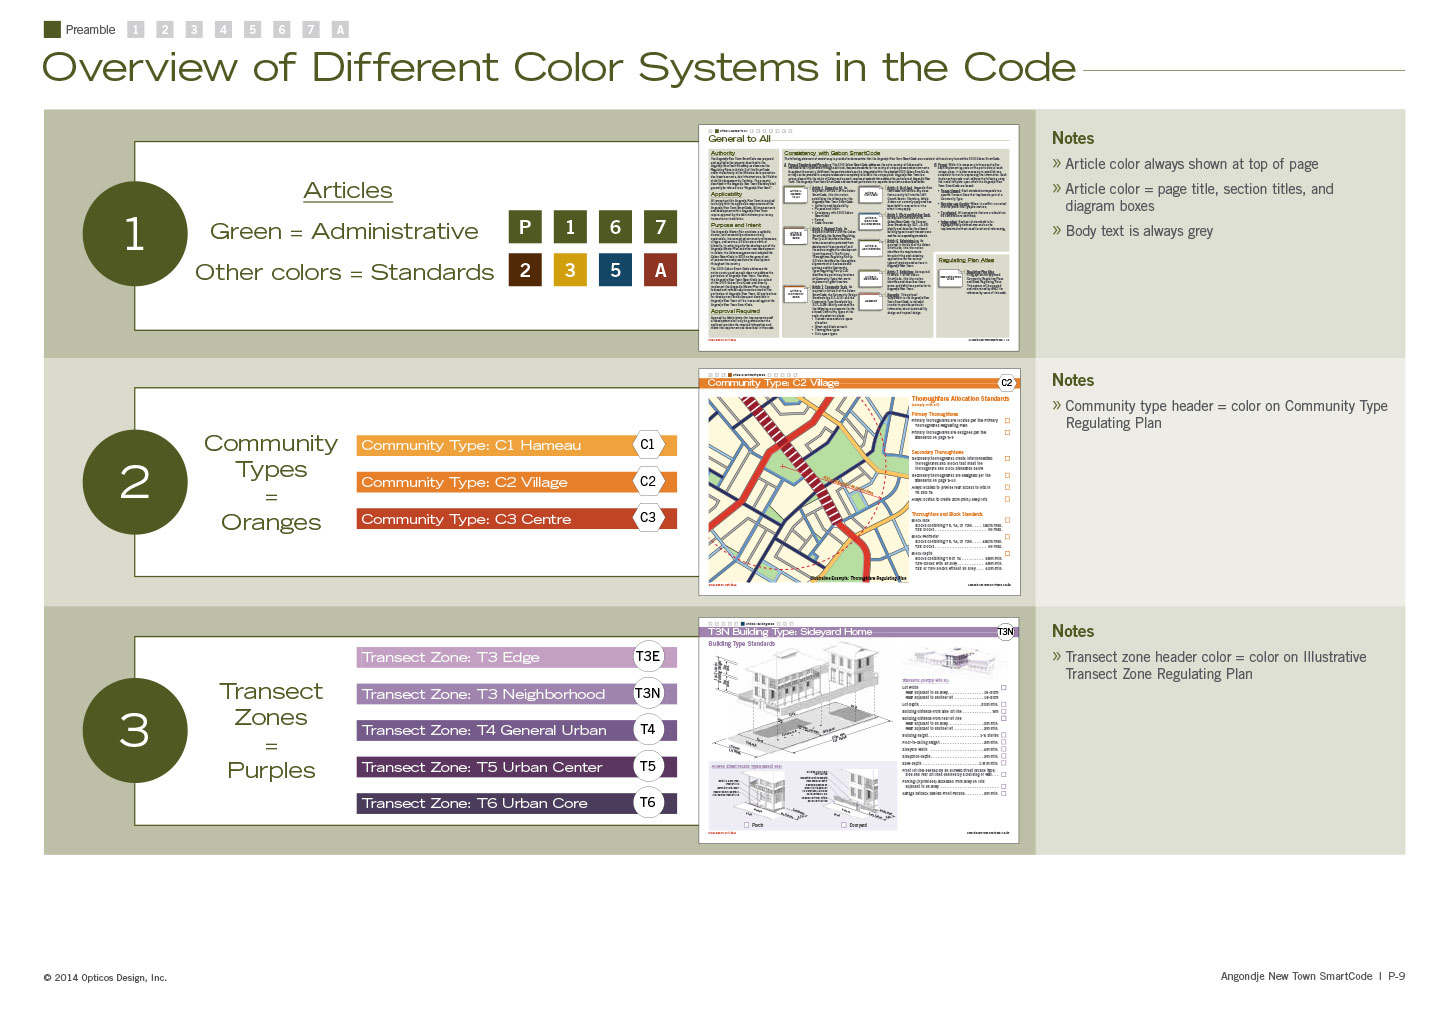 Overview of Different Color Systems in the Code, which was eluded to in the Table of Contents and is used throughout the code